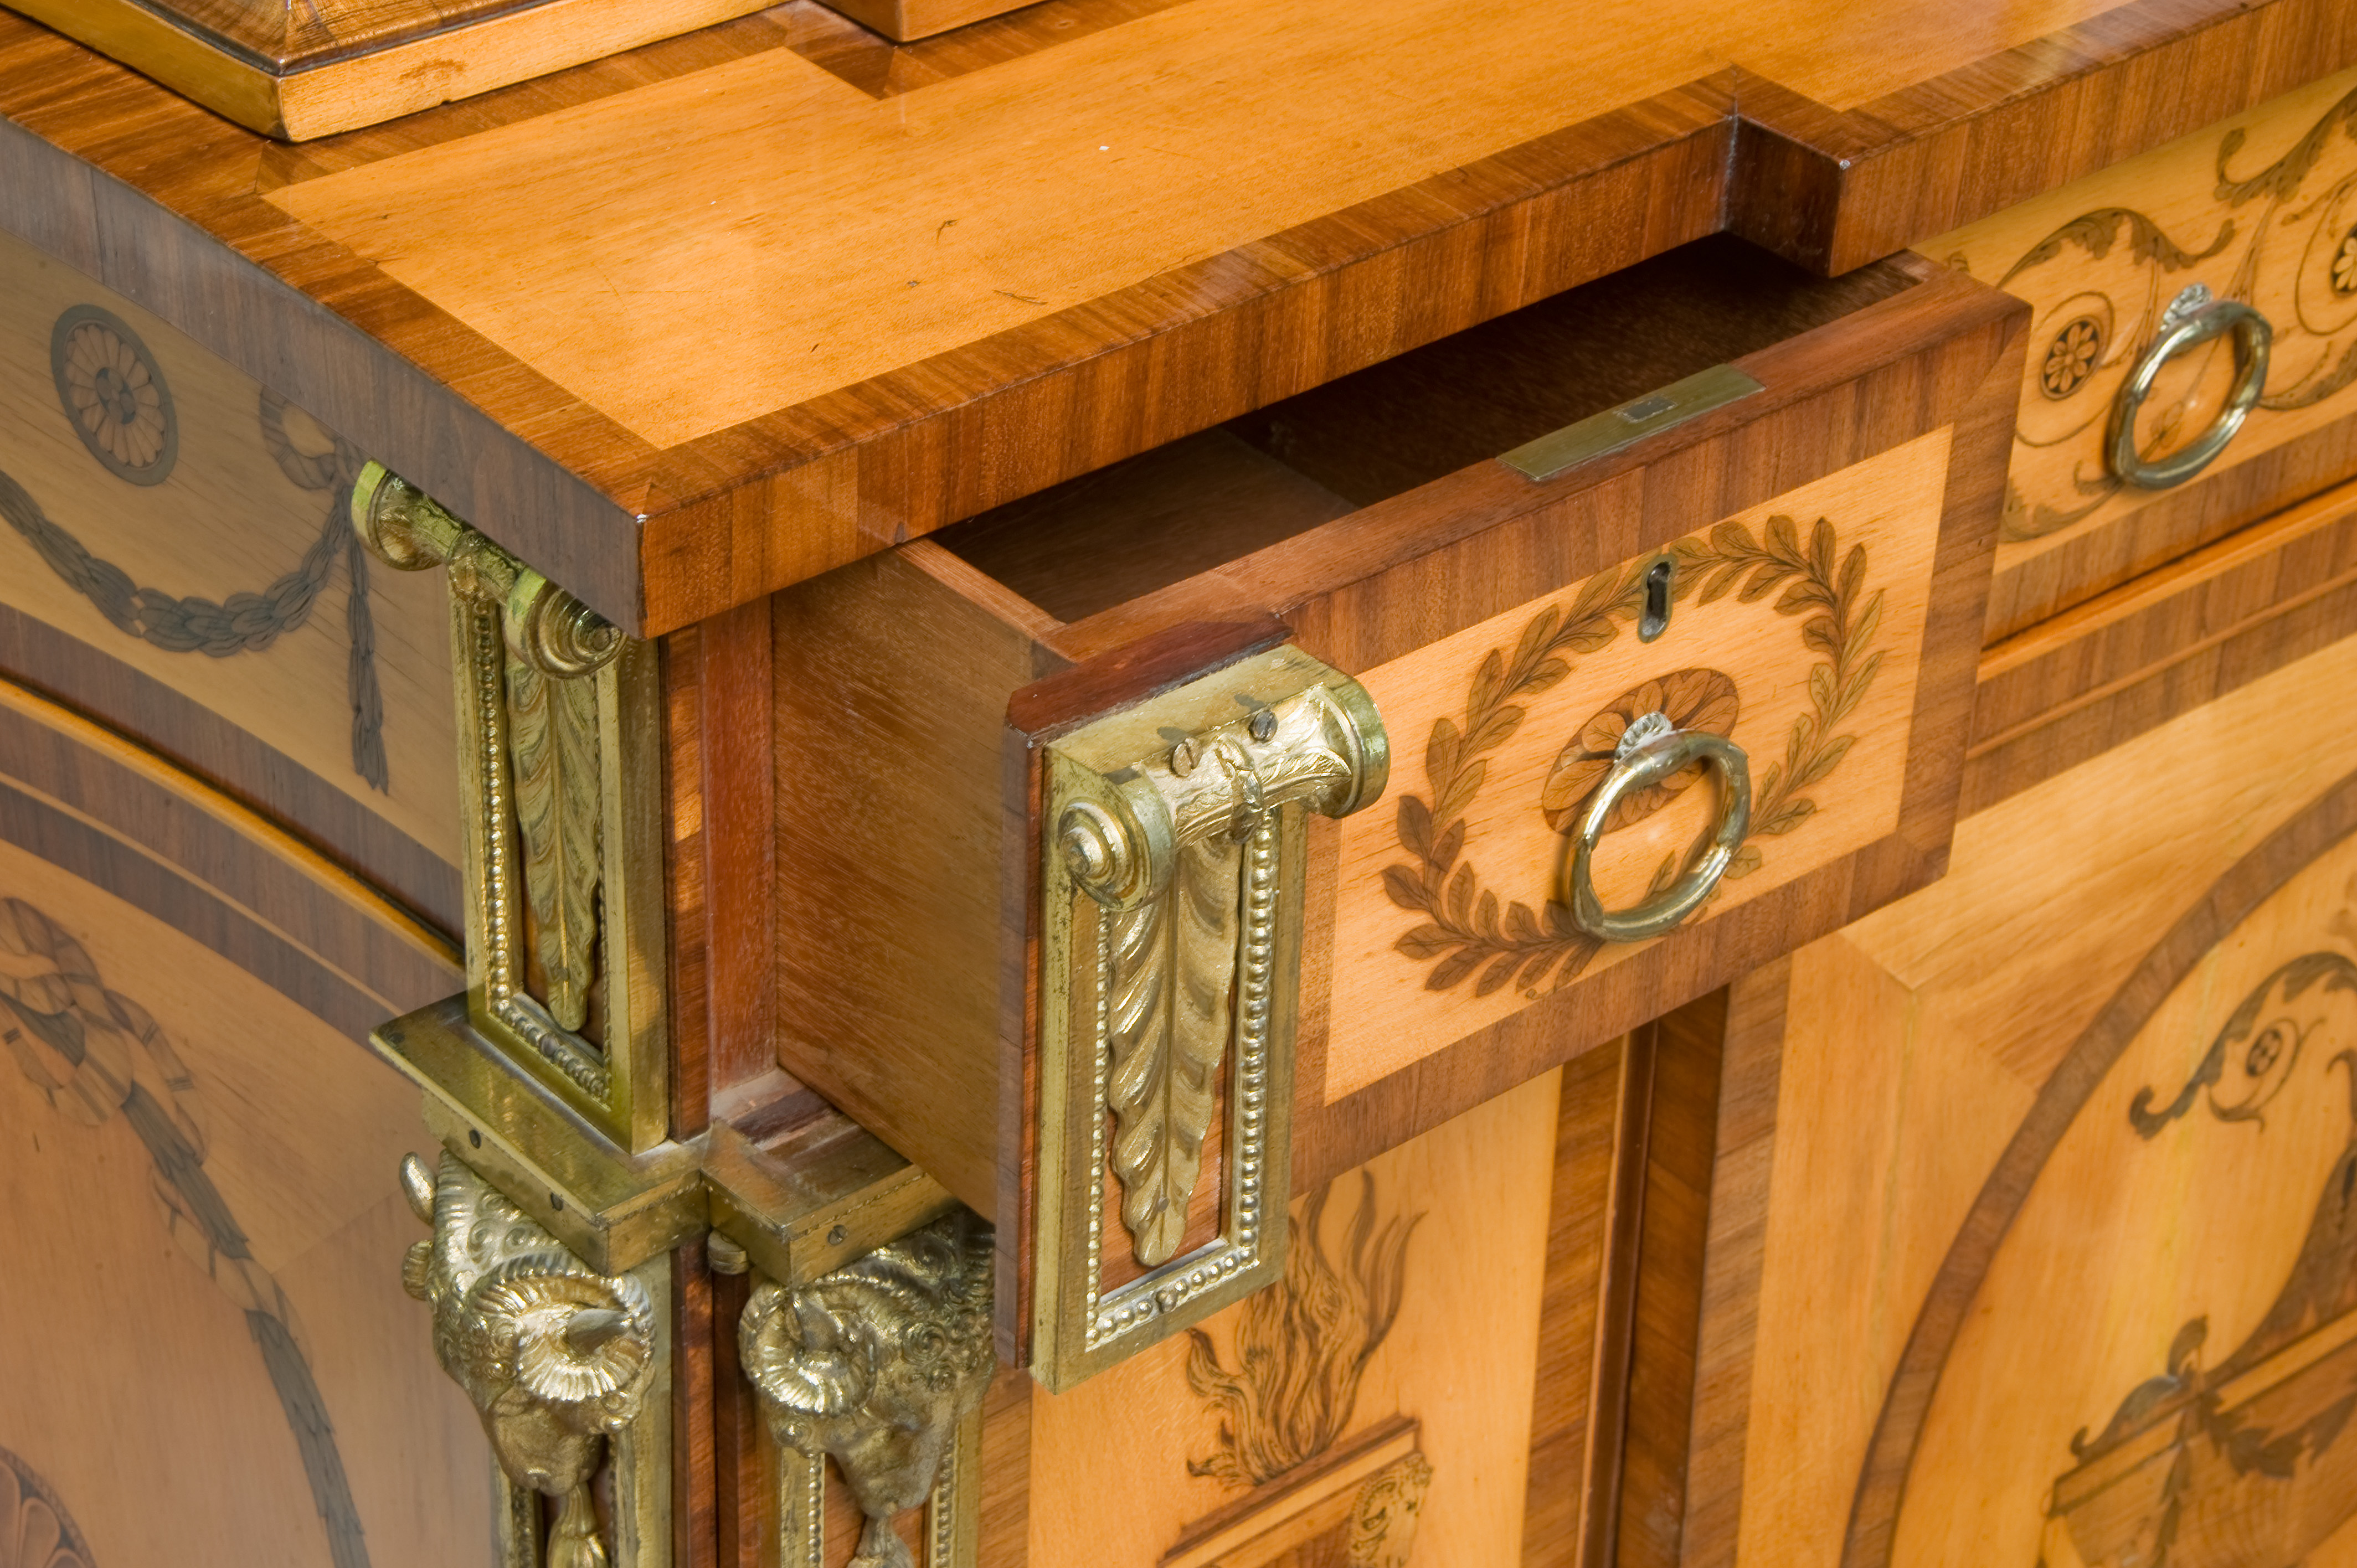 Panshanger Cabinet Thomas Chippendale Firle Place Sussex Detail